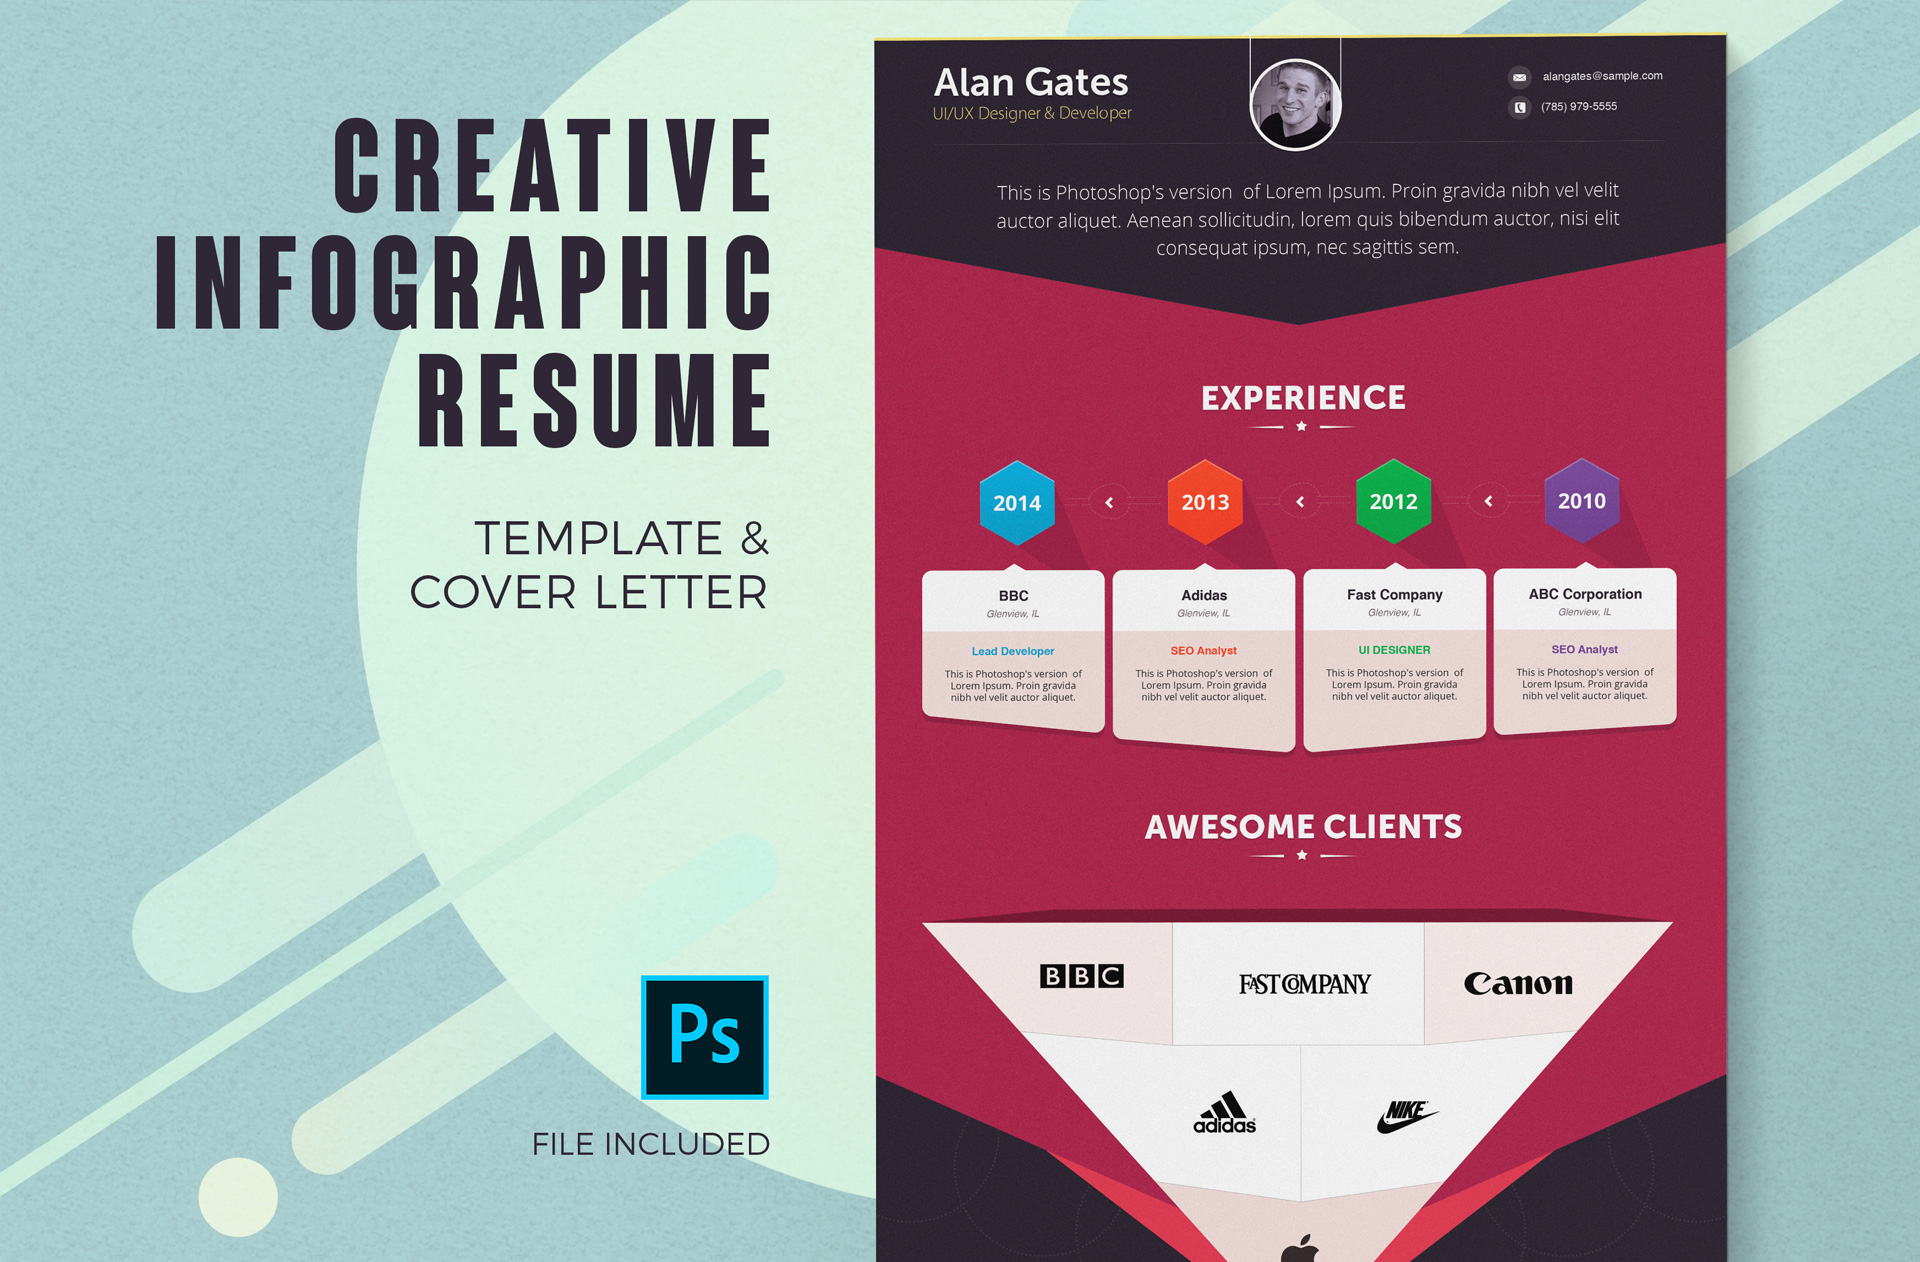 Creative Infographic Resume Template Cover Letter 4 Color Schemes